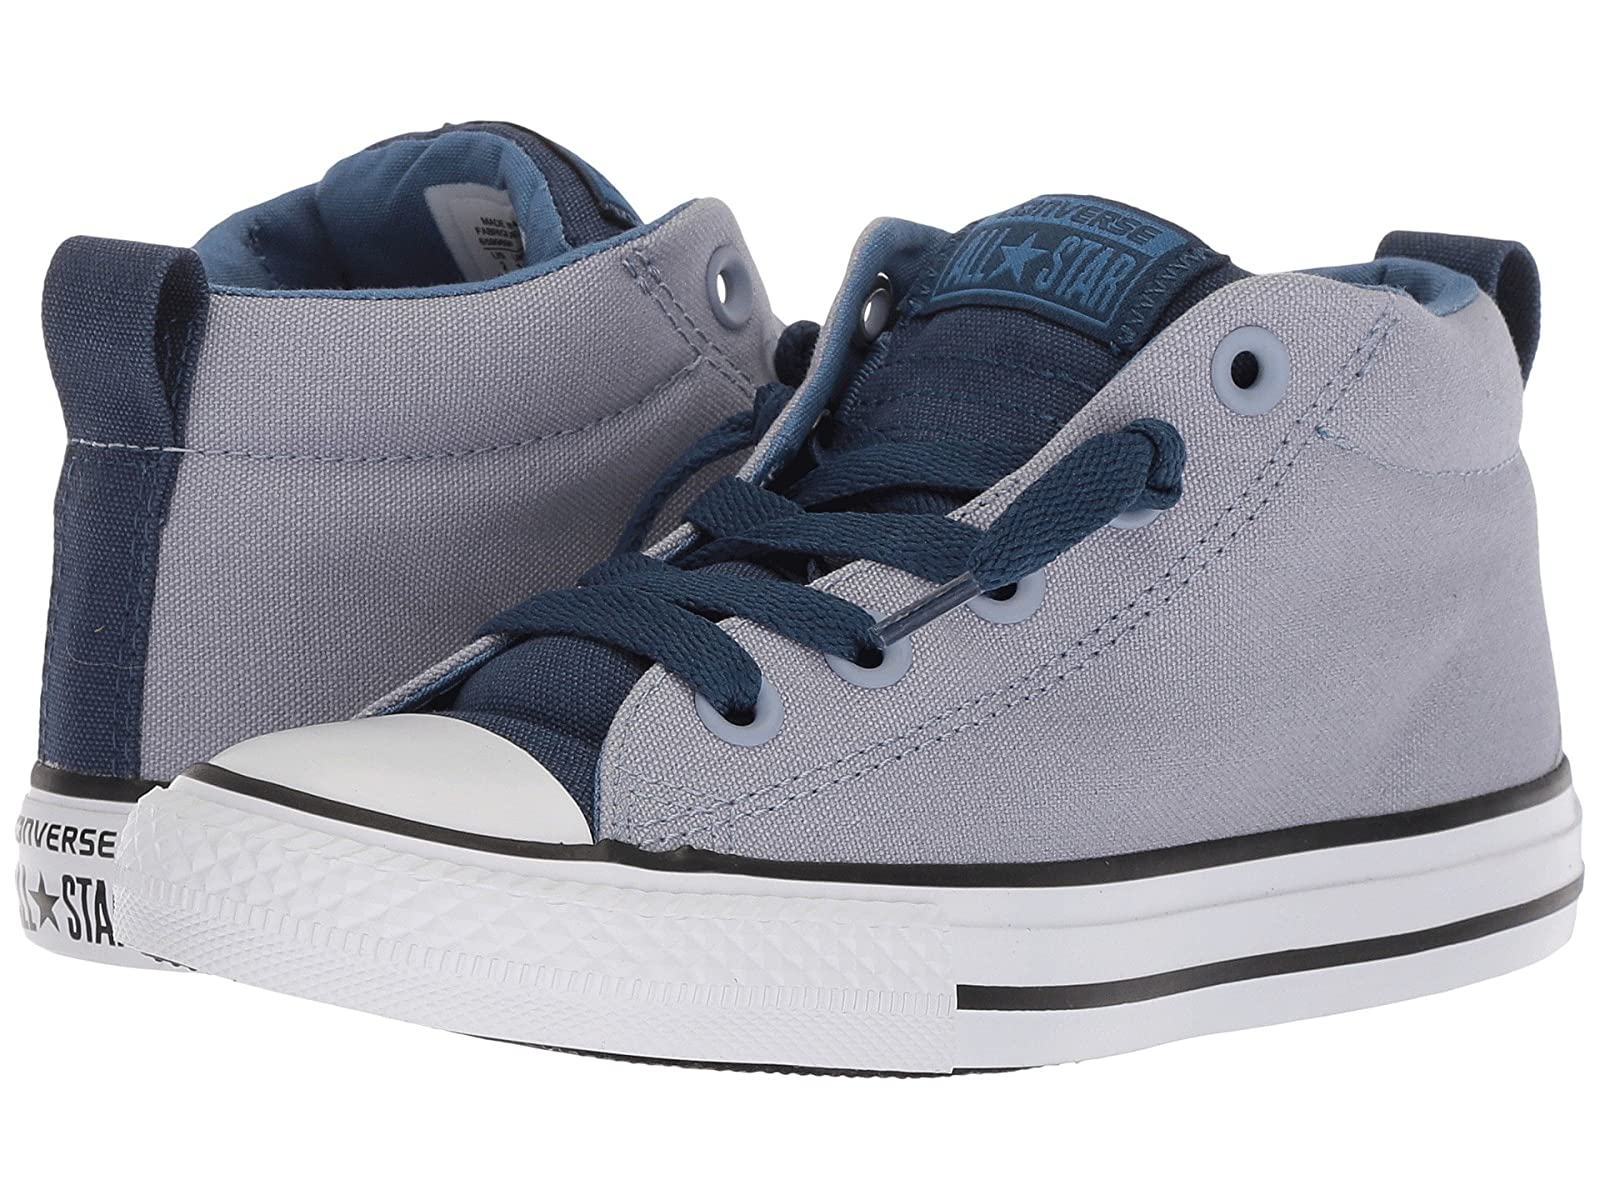 Converse Kids Chuck Taylor All Star Street Mid (Little Kid/Big Kid)Atmospheric grades have affordable shoes